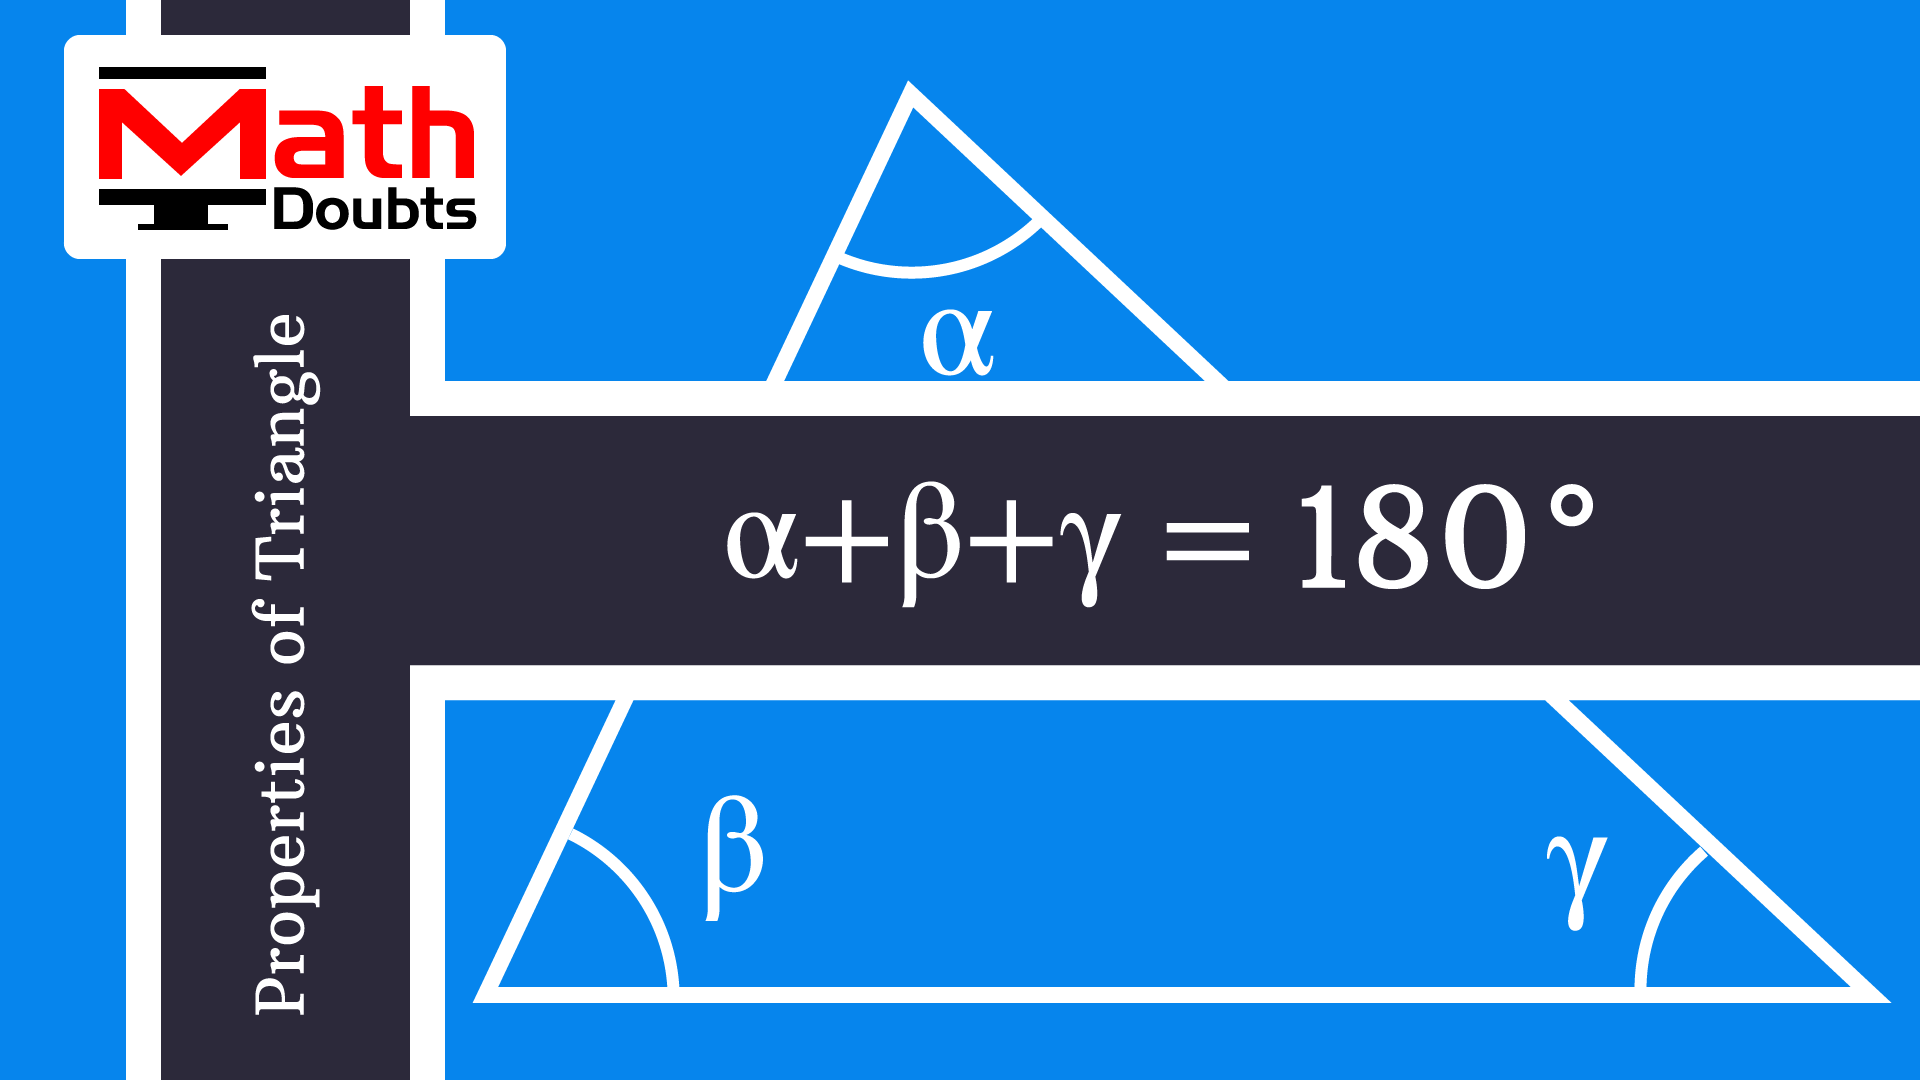 Learn How To Prove Summation Of All Three Interior Angles